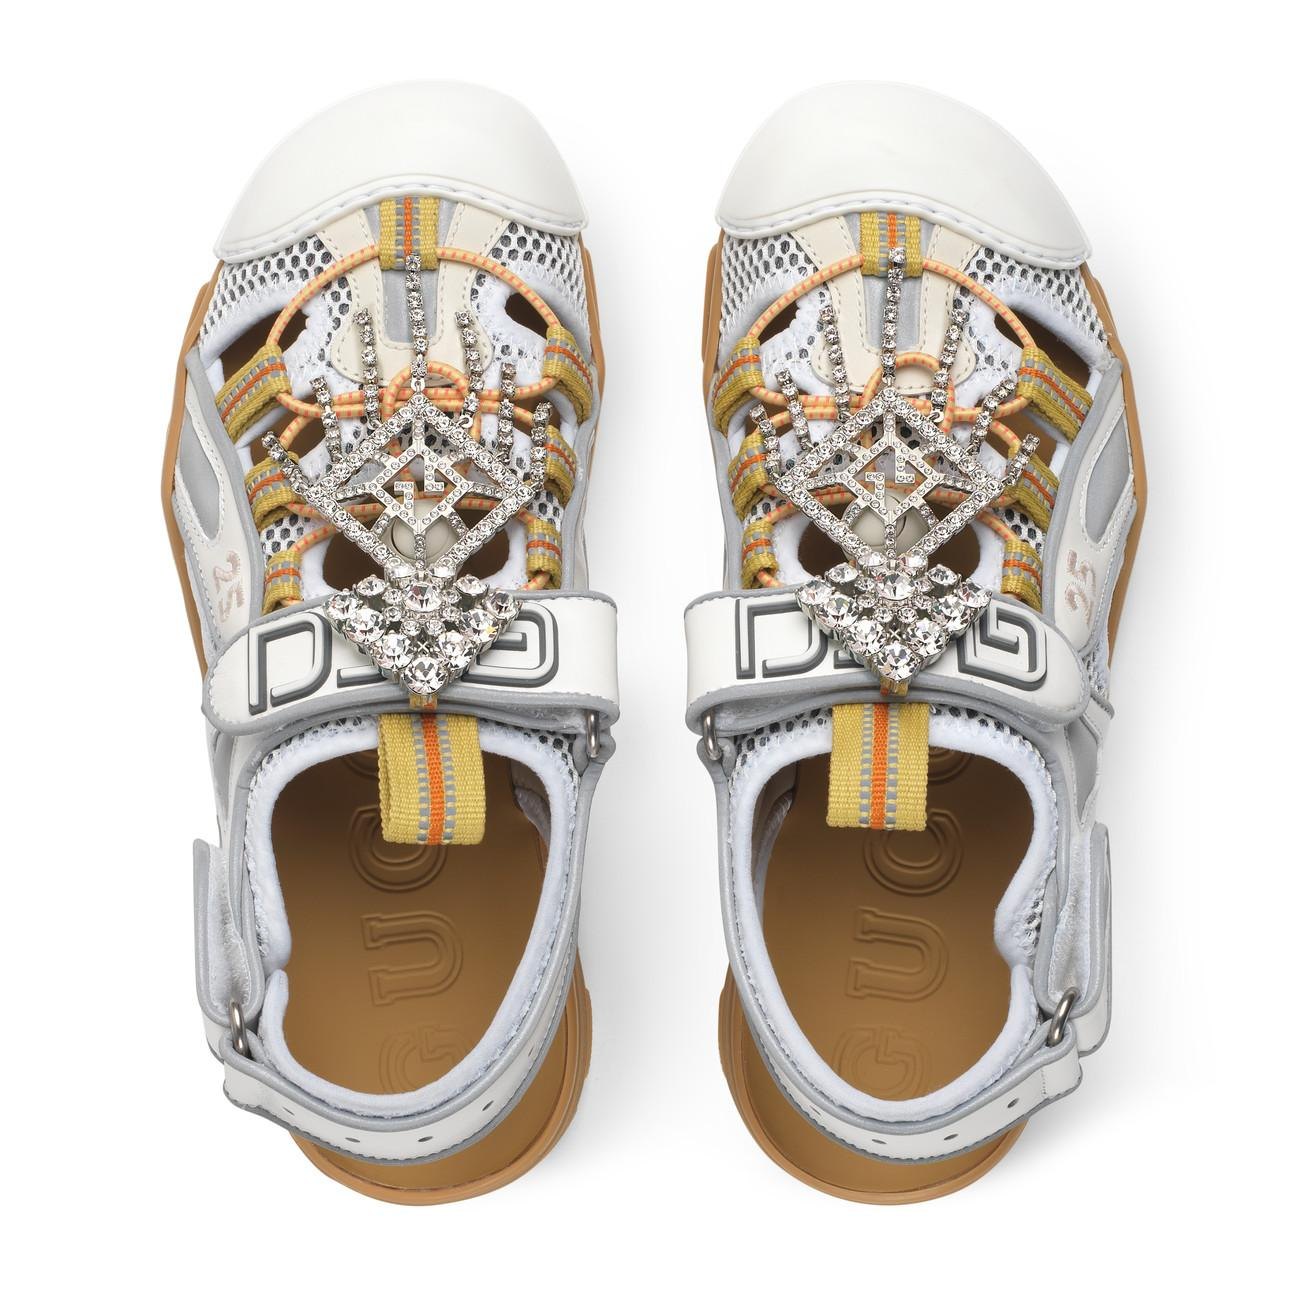 d80a6d4f414 Gucci - White Women s Leather And Mesh Sandal With Crystals - Lyst. View  fullscreen